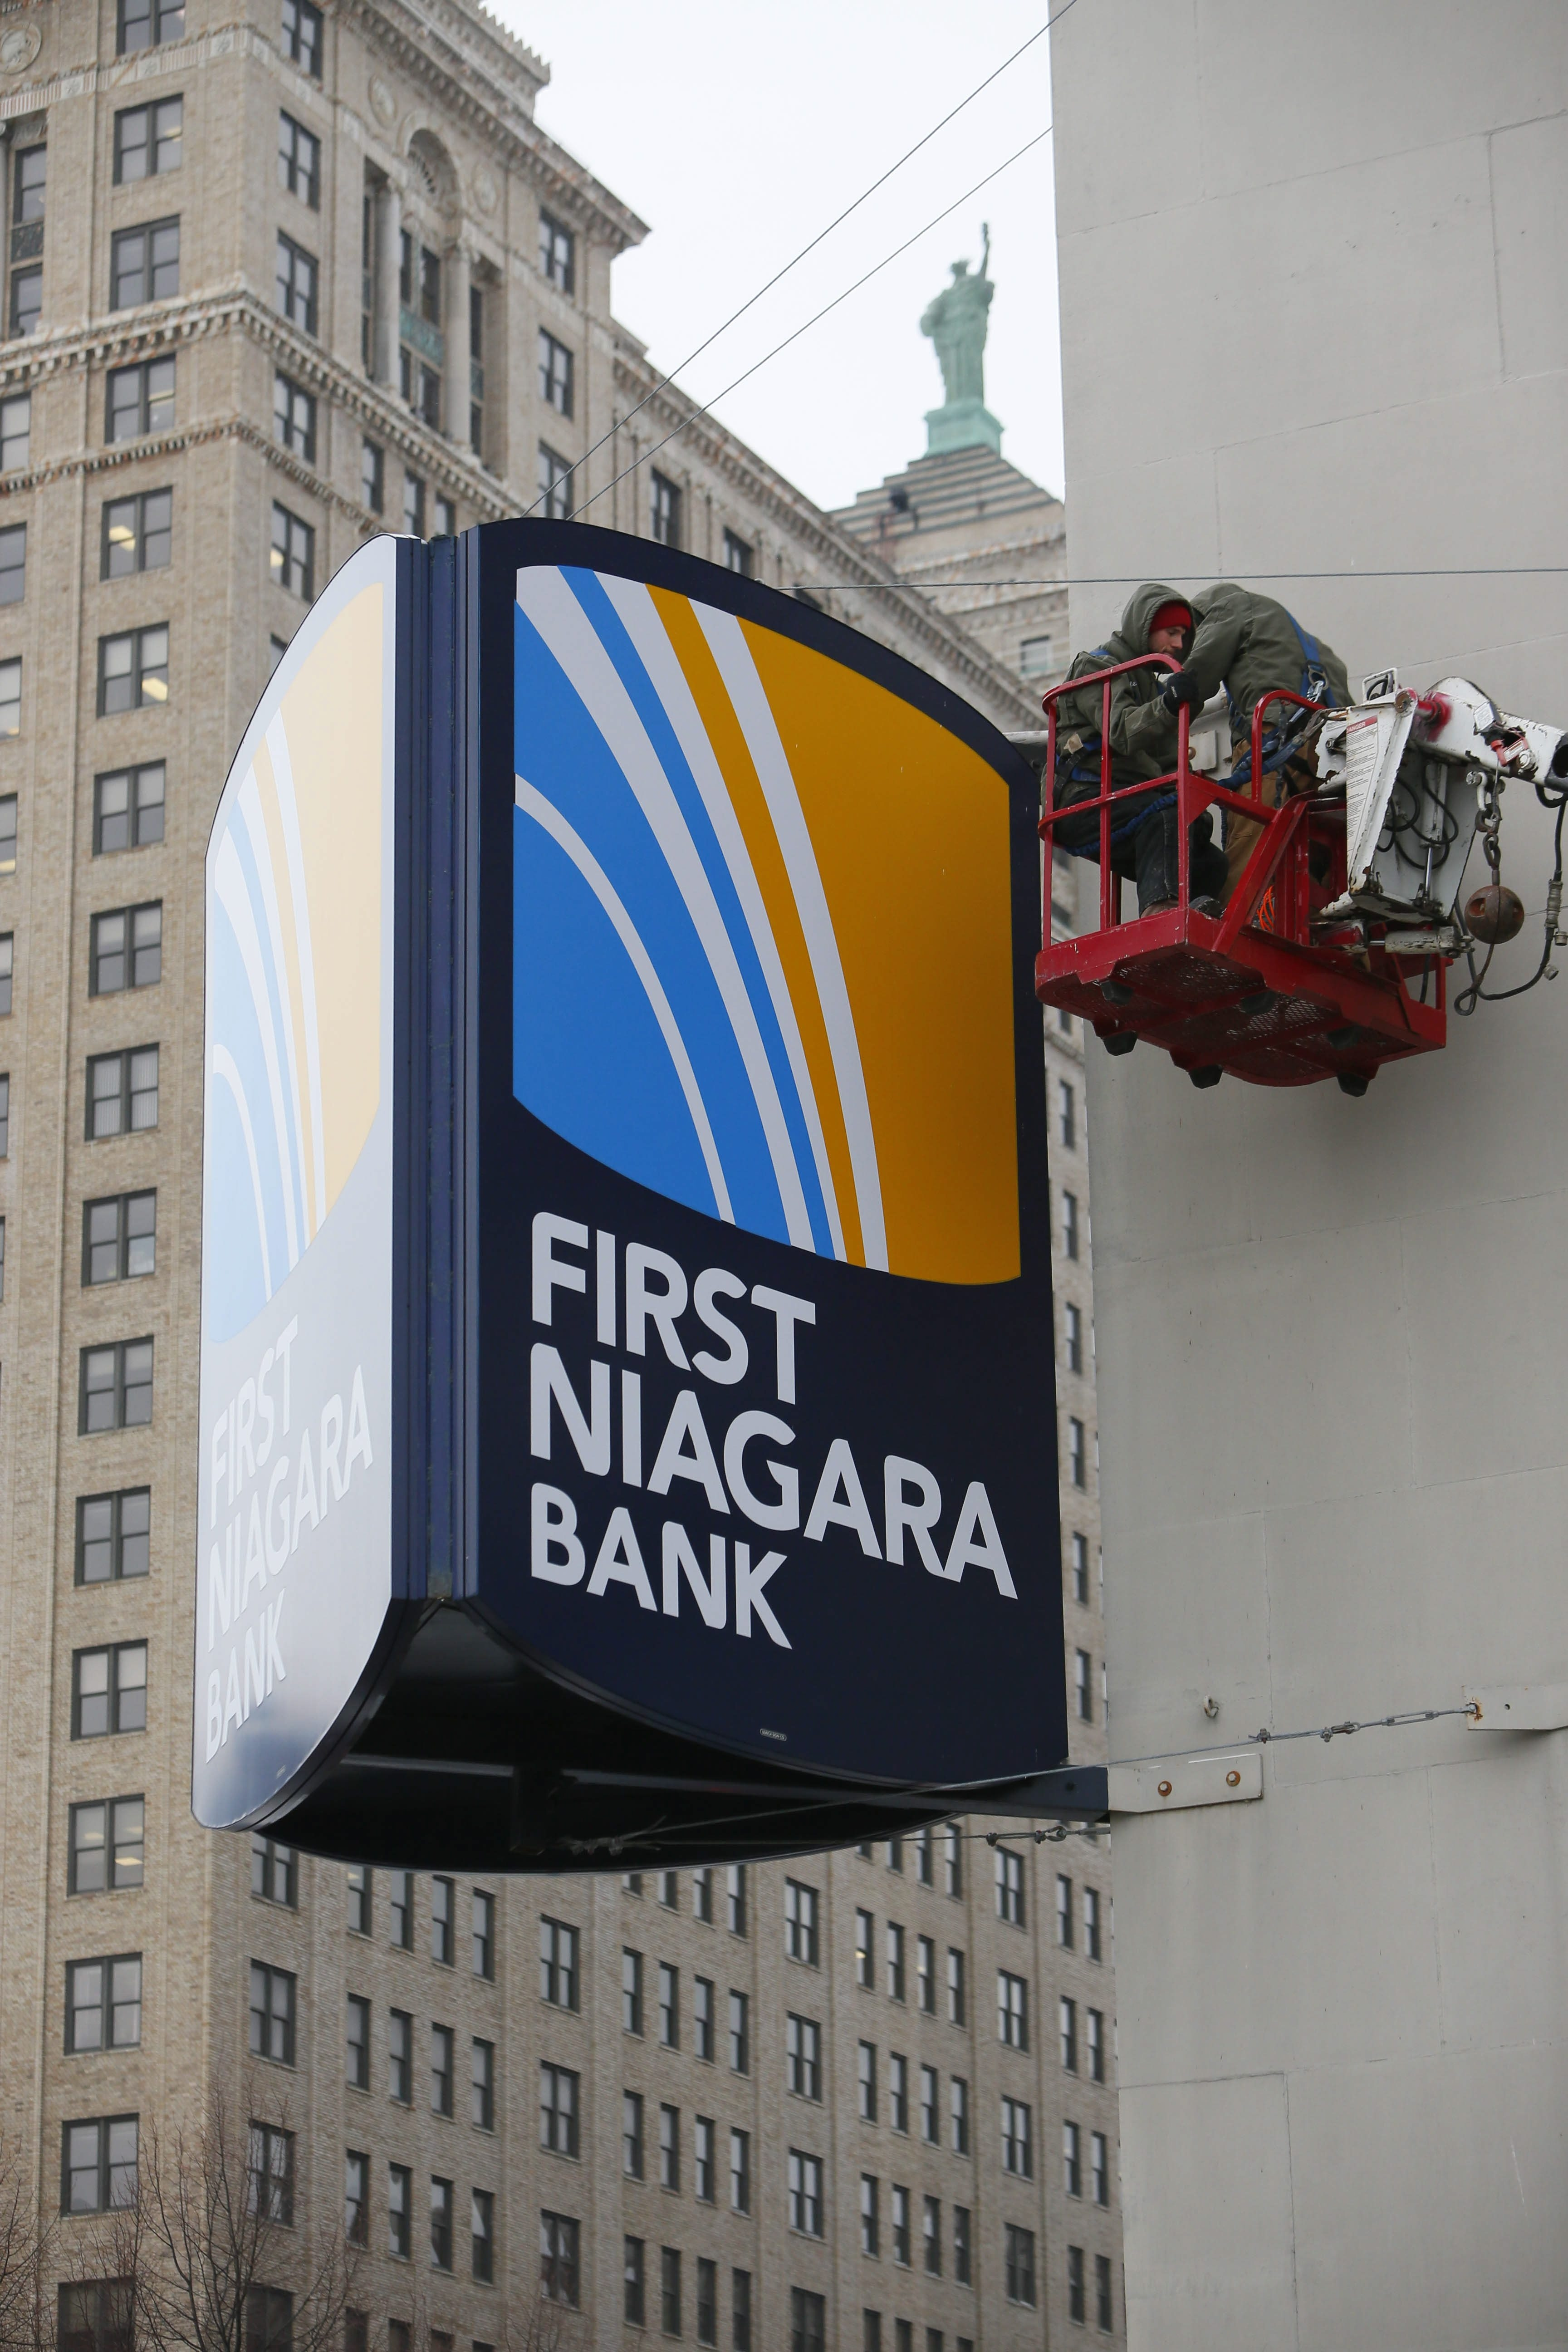 First Niagara Financial Group and Key Corp. have settled a lawsuit filed by shareholders after the Key takeover of First Niagara was announced. (Derek Gee/News file photo)